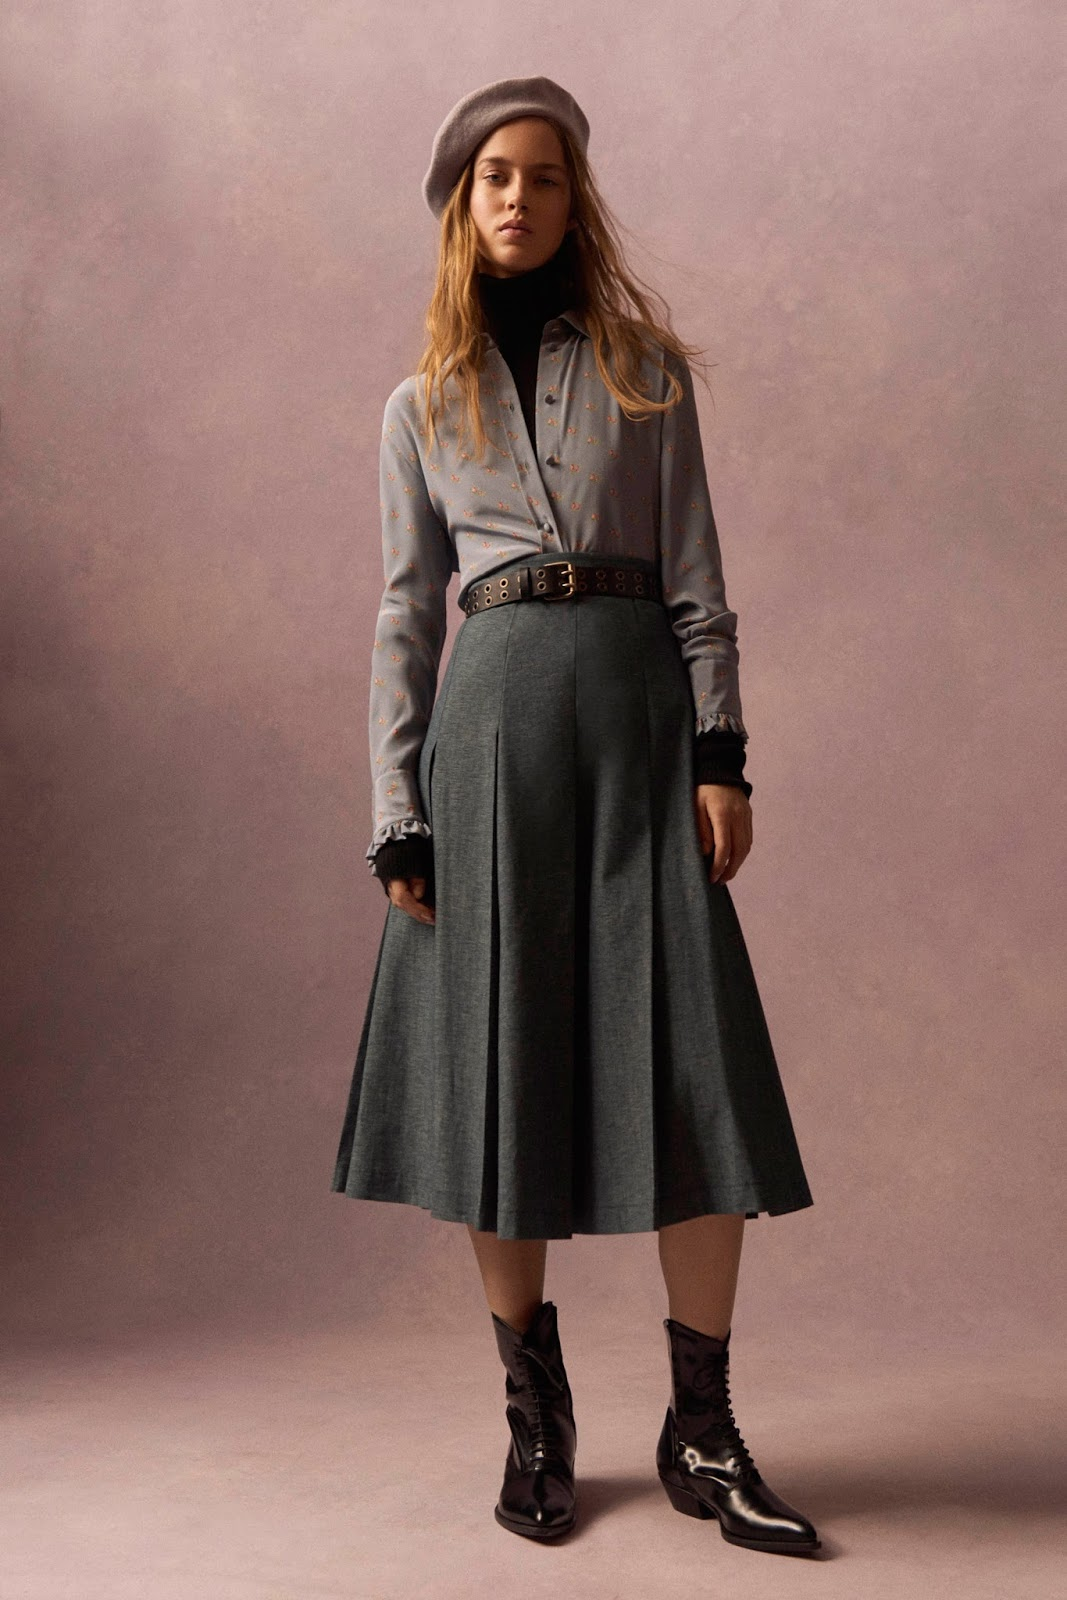 best looks from Philosophy di Lorenzo Serafini Pre-Fall 2016 via www.fashionedbylove.co.uk